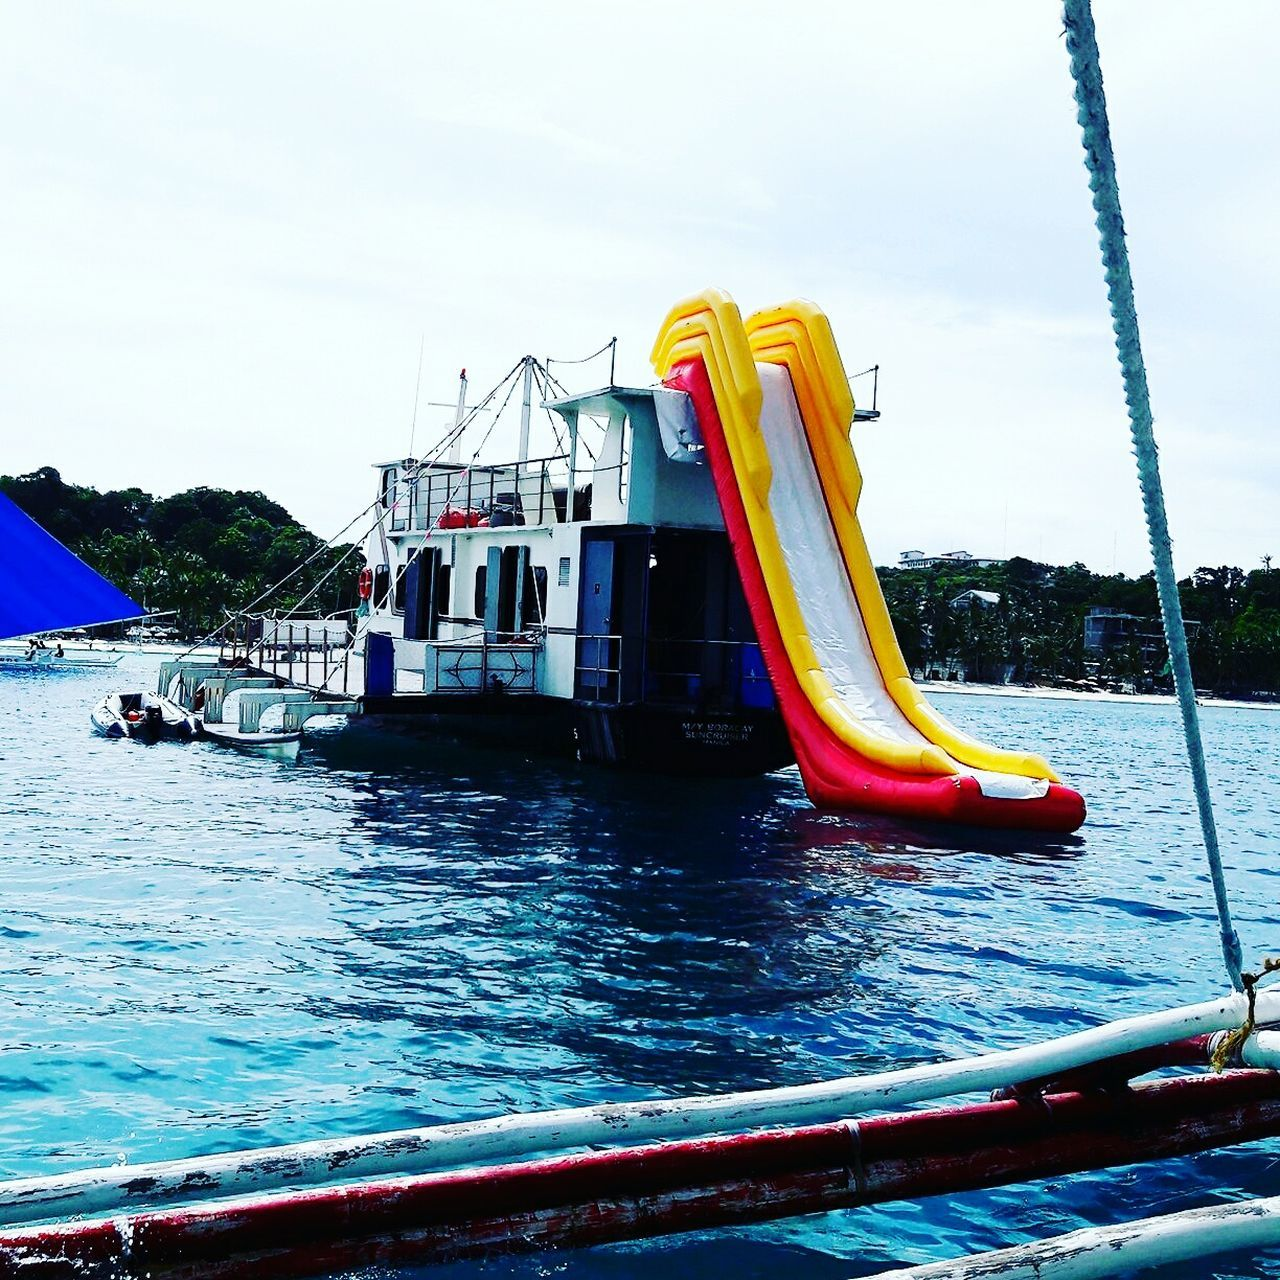 Want to give a try ? Slide in the open sea. Slideplayground Slideinthesea Sea Seaslide Boracay Philippines